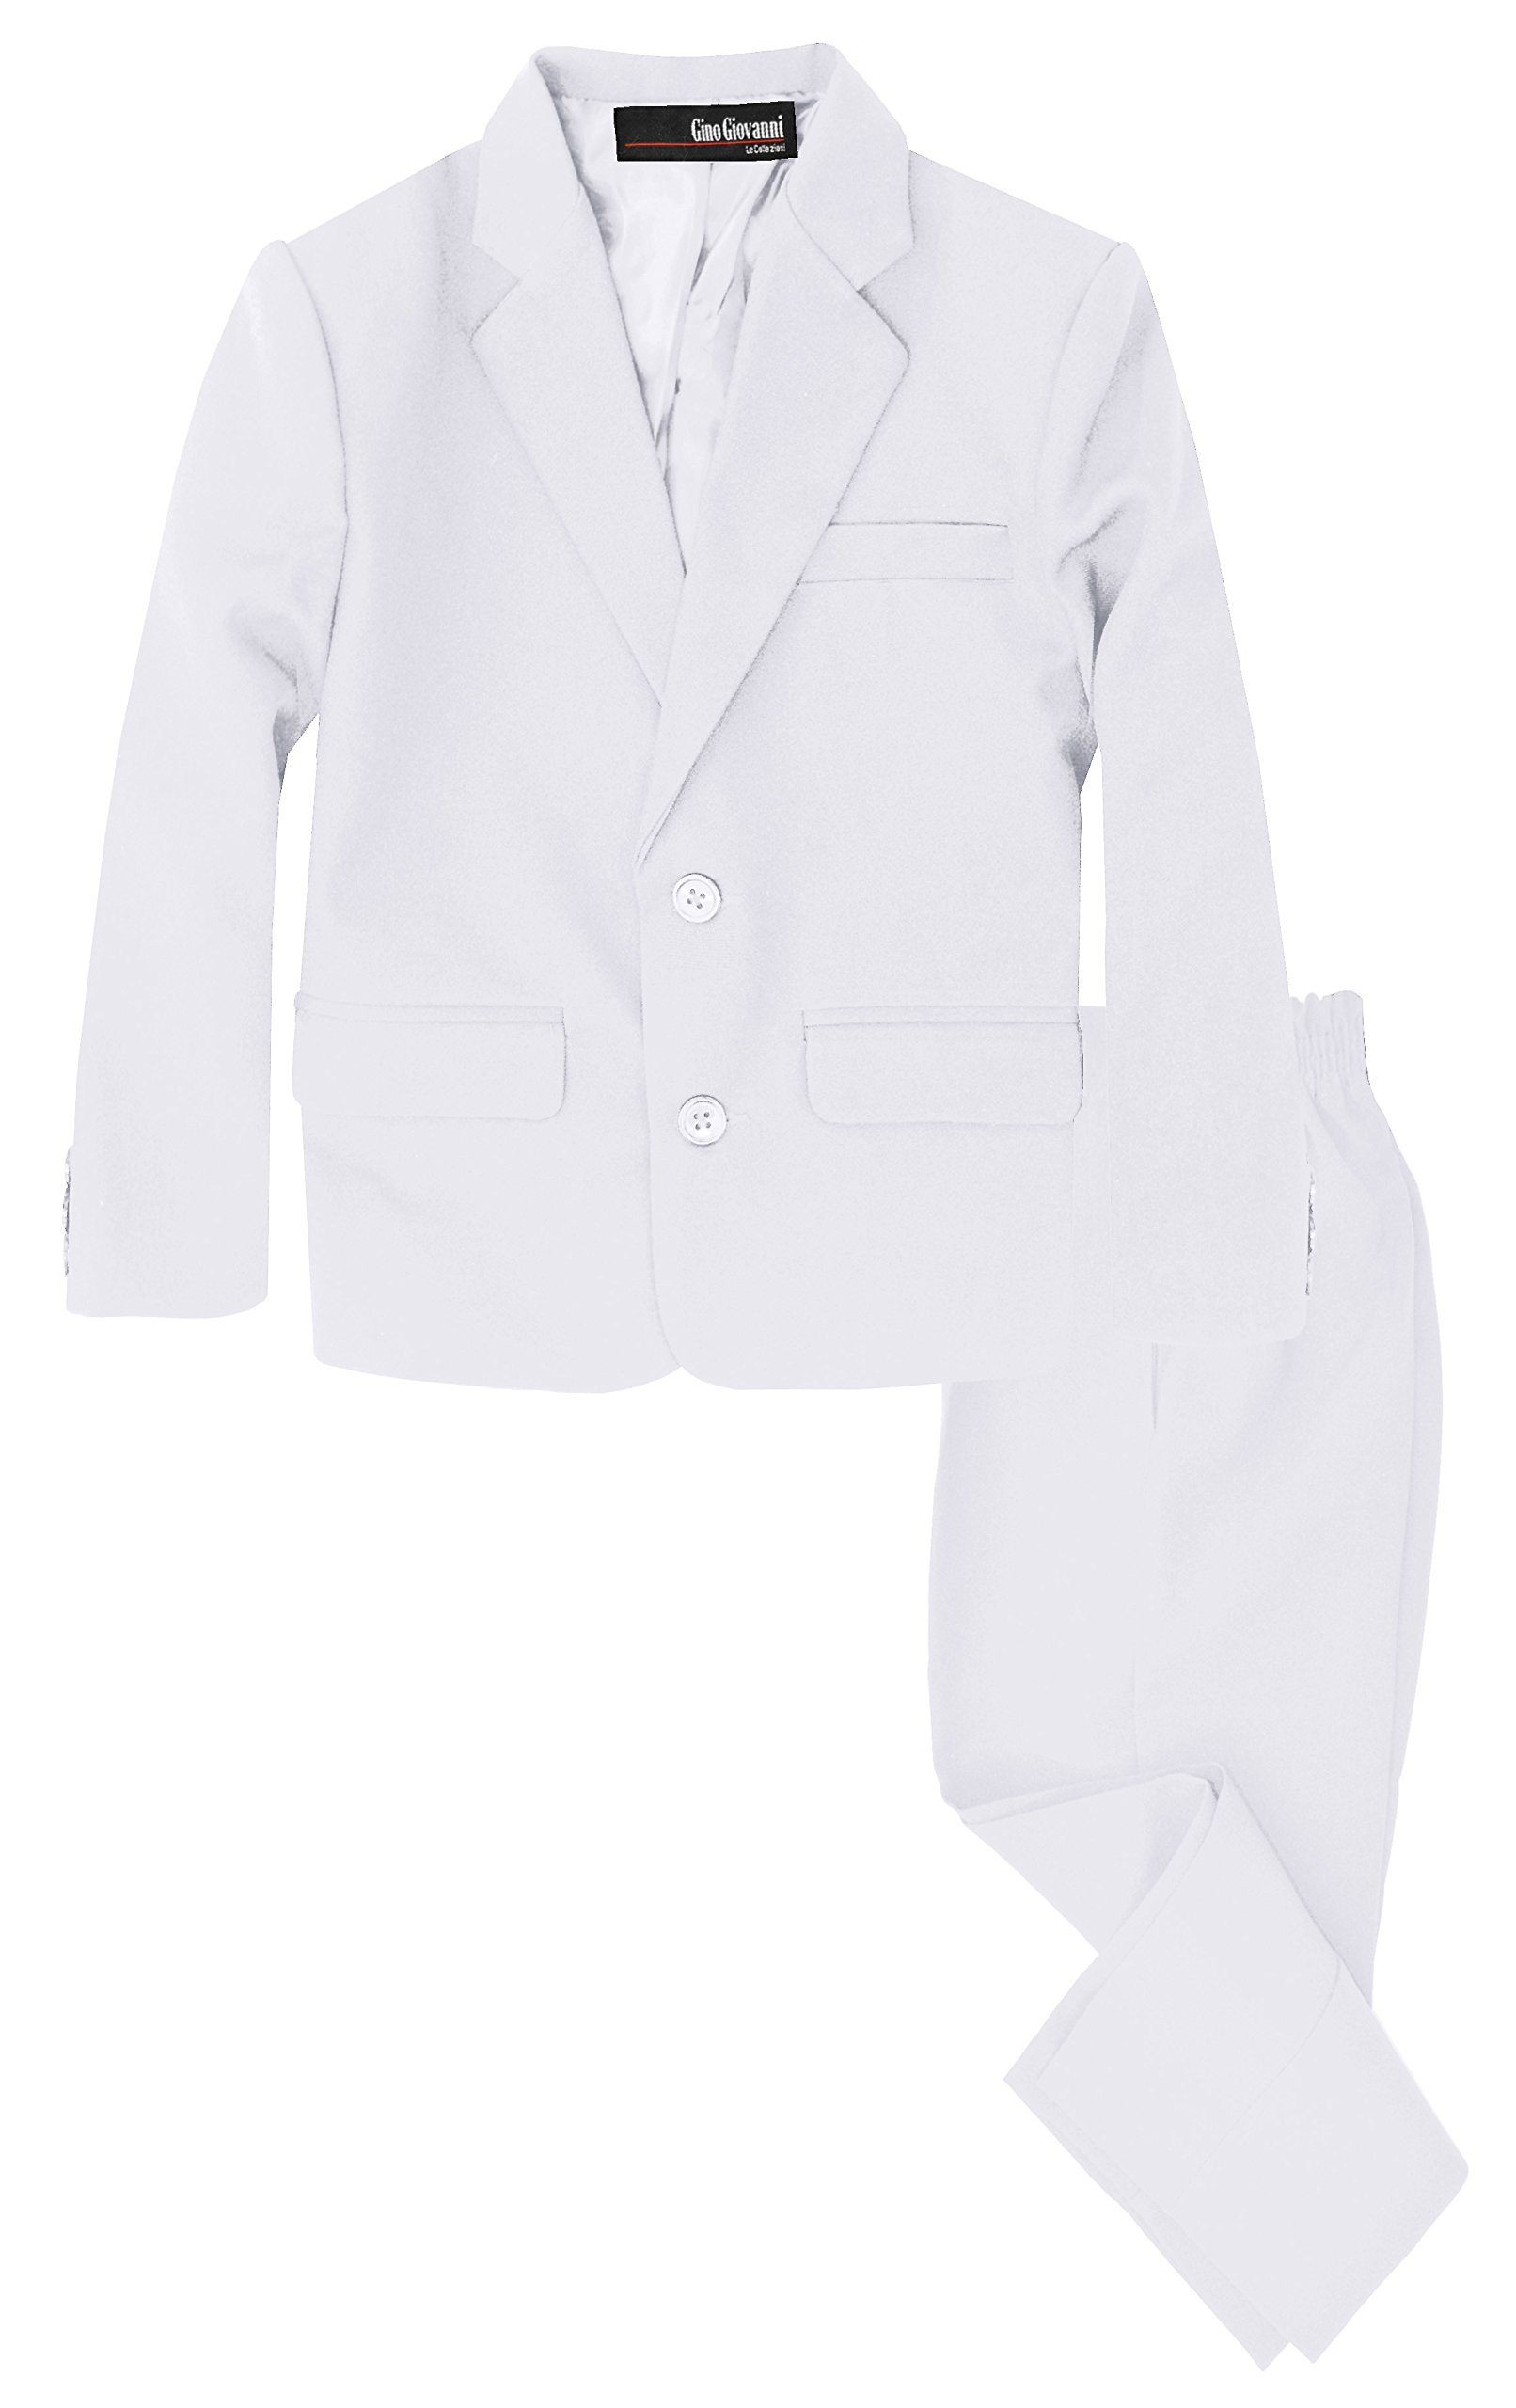 G218 Boys 2 Piece Suit Set Toddler to Teen (7, White) by Gino Giovanni